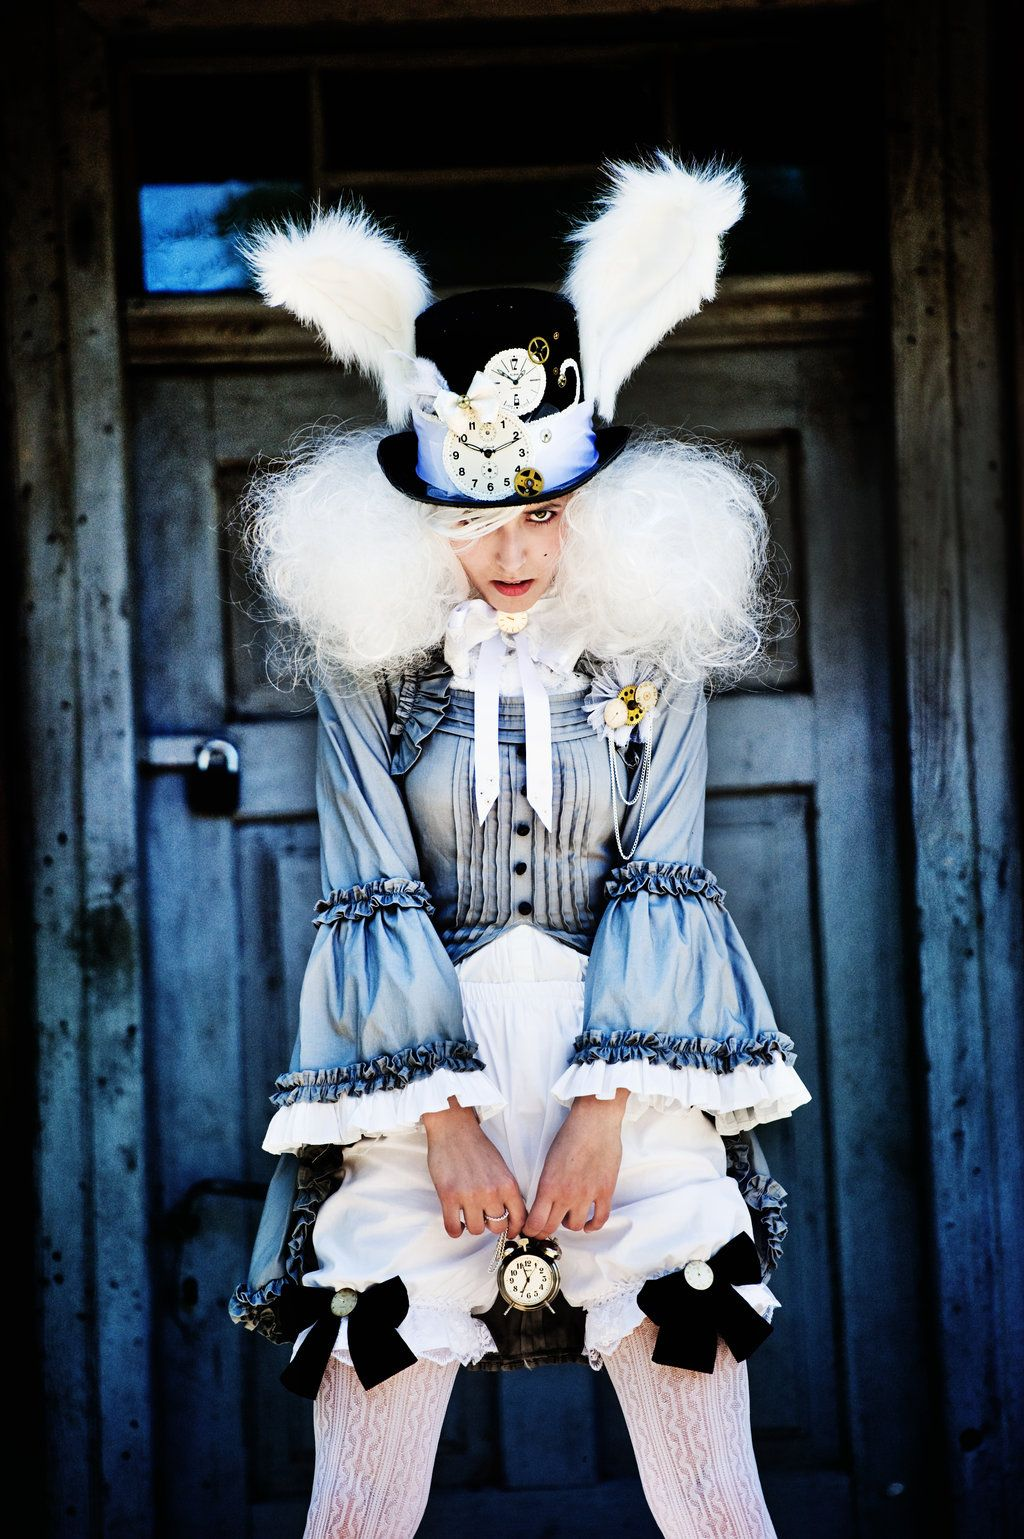 steampunk white rabbit cosplay - Google Search | Cosplay ...